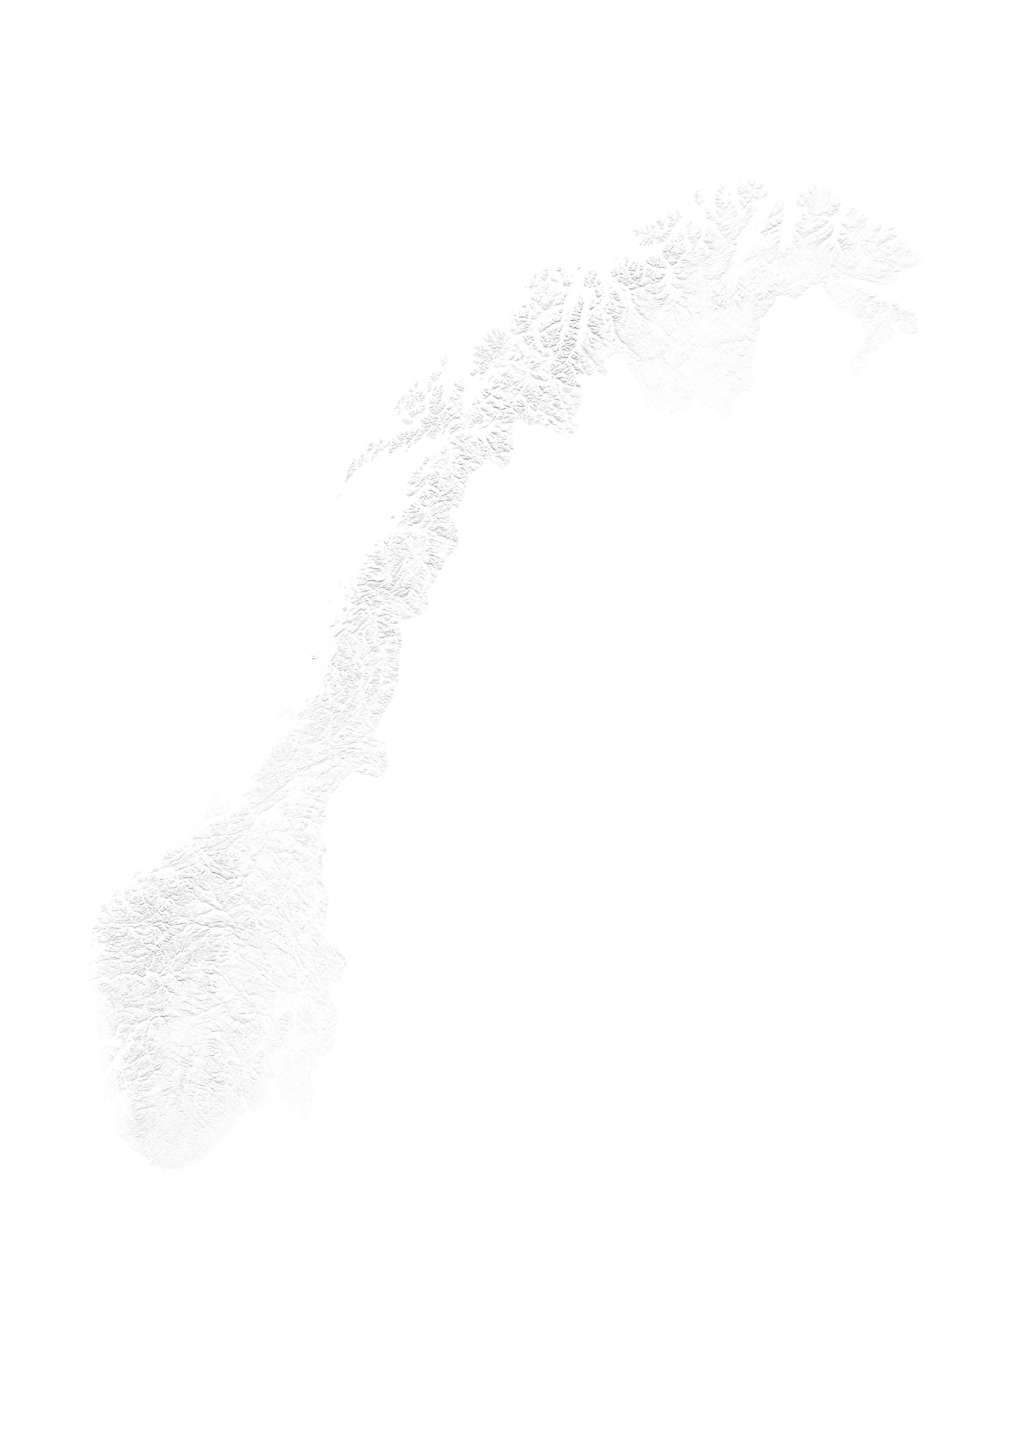 Norway wall map